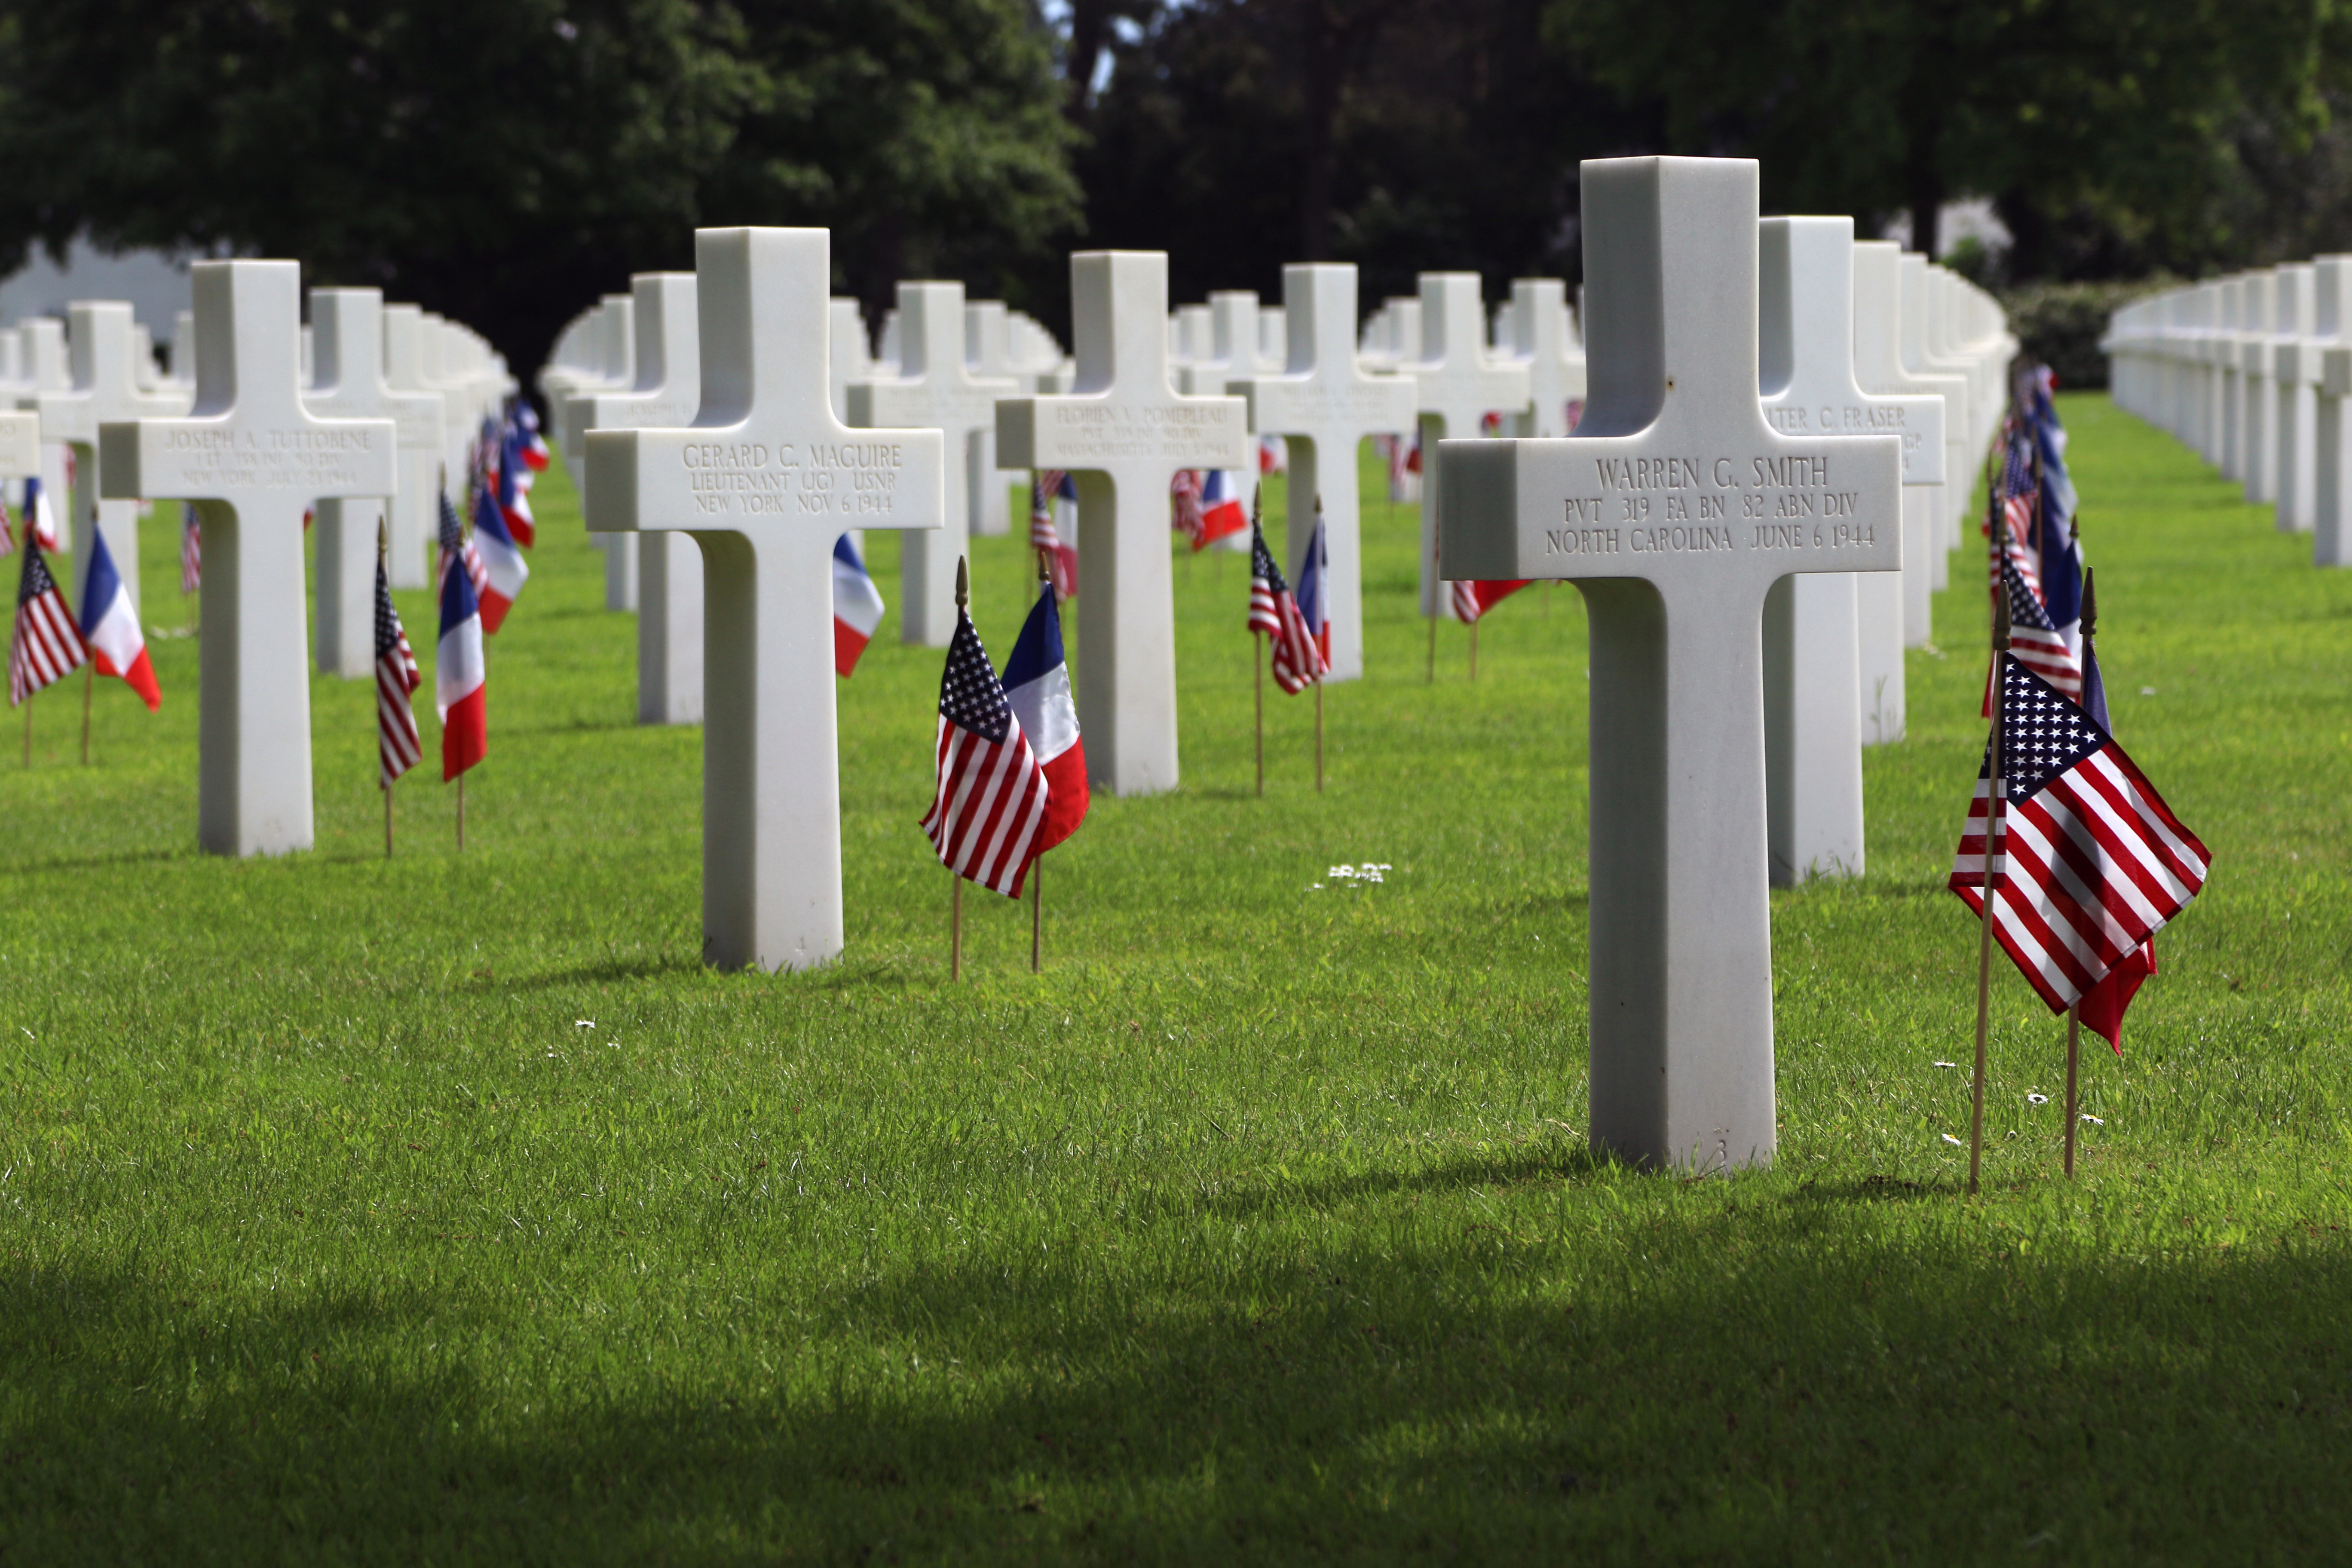 The tombstone of U.S. Army Pvt. Warren G. Smith, right, a paratrooper assigned to the 319th Field Artillery Battalion, 82nd Airborne Division, at the Normandy American Cemetery and Memorial on May 28, 2018, in Colleville-sur-Mer, France. More than 9,000 graves are dedicated to the 82nd Airborne Division paratroopers and other servicemembers who lost their lives during World War II, many of them on D-Day, June 6, 1944.  (U.S. Army photo by Sgt. 1st Class Daniel Wallace)